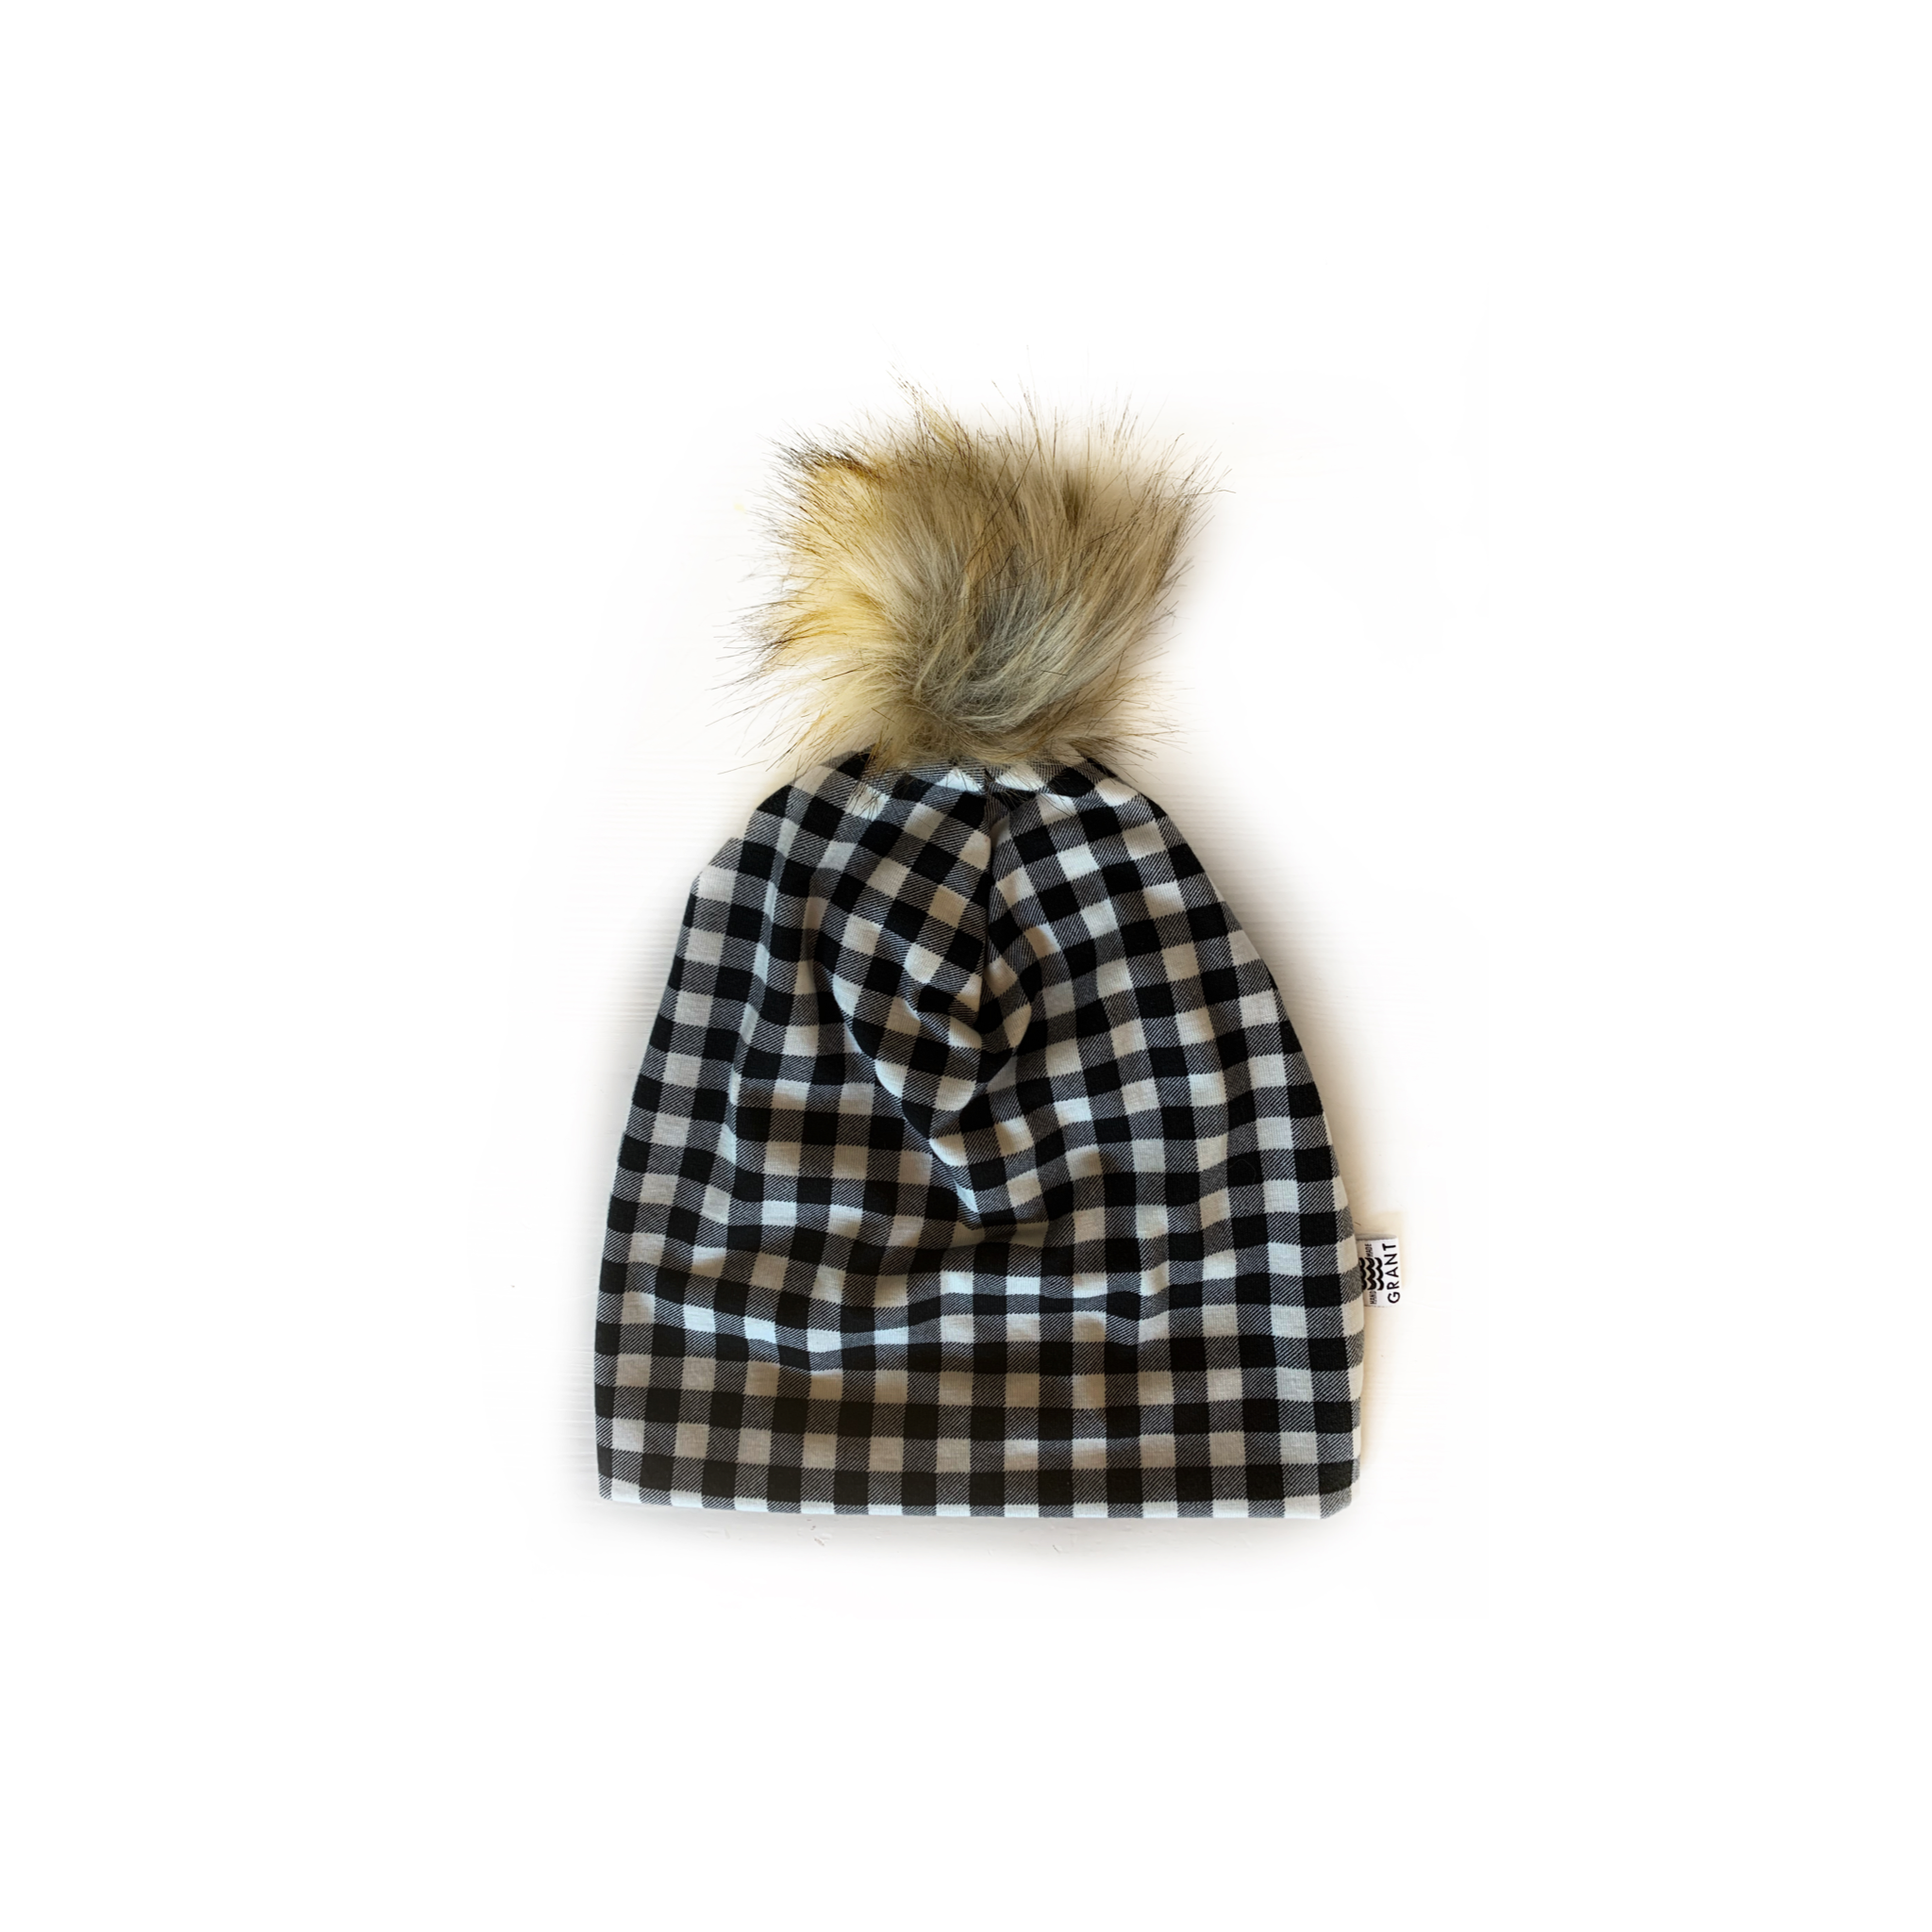 Slouchy Pom Beanie in Black + White Plaid